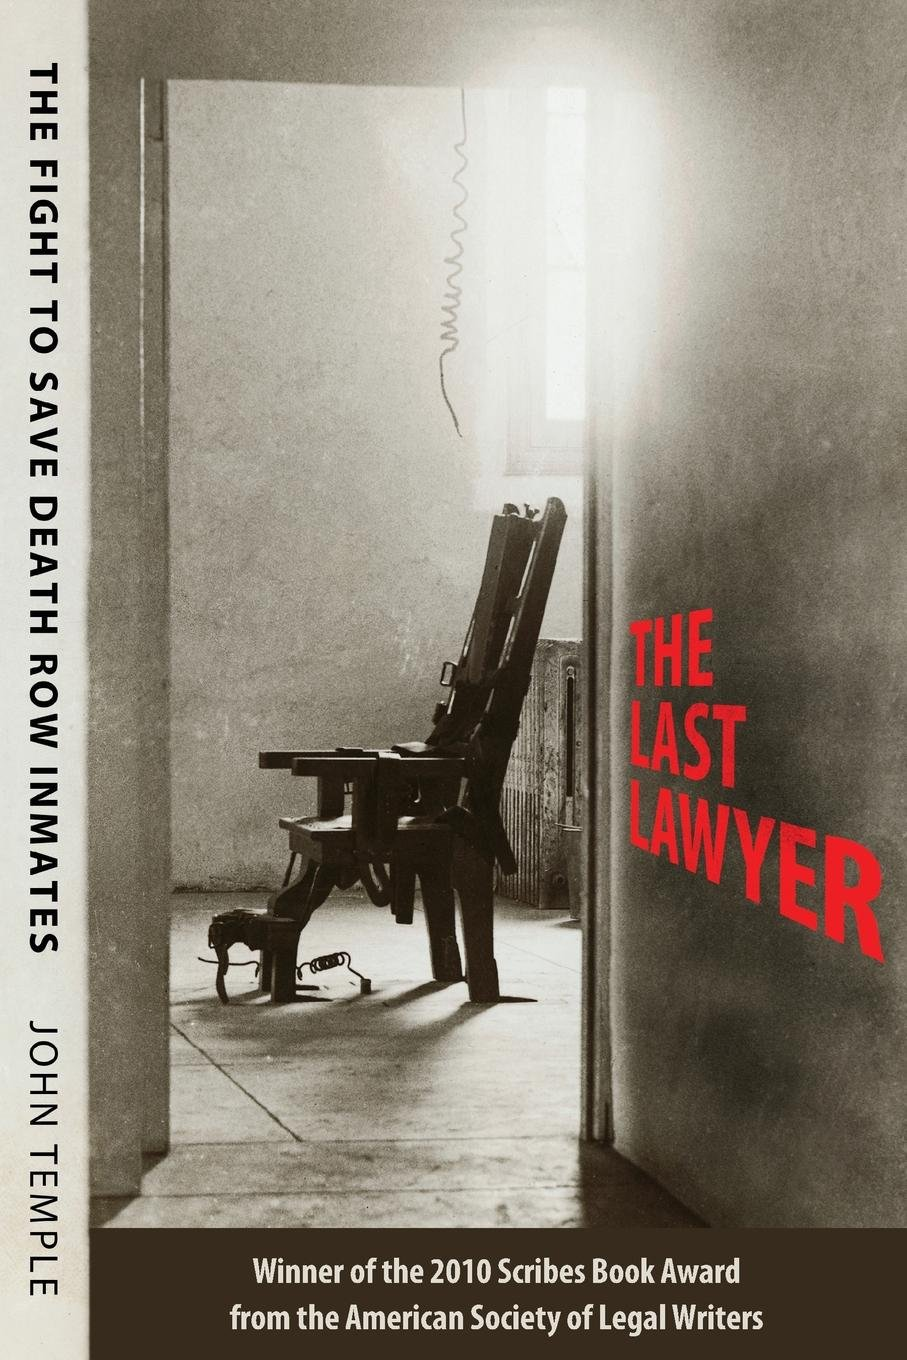 The Last Lawyer